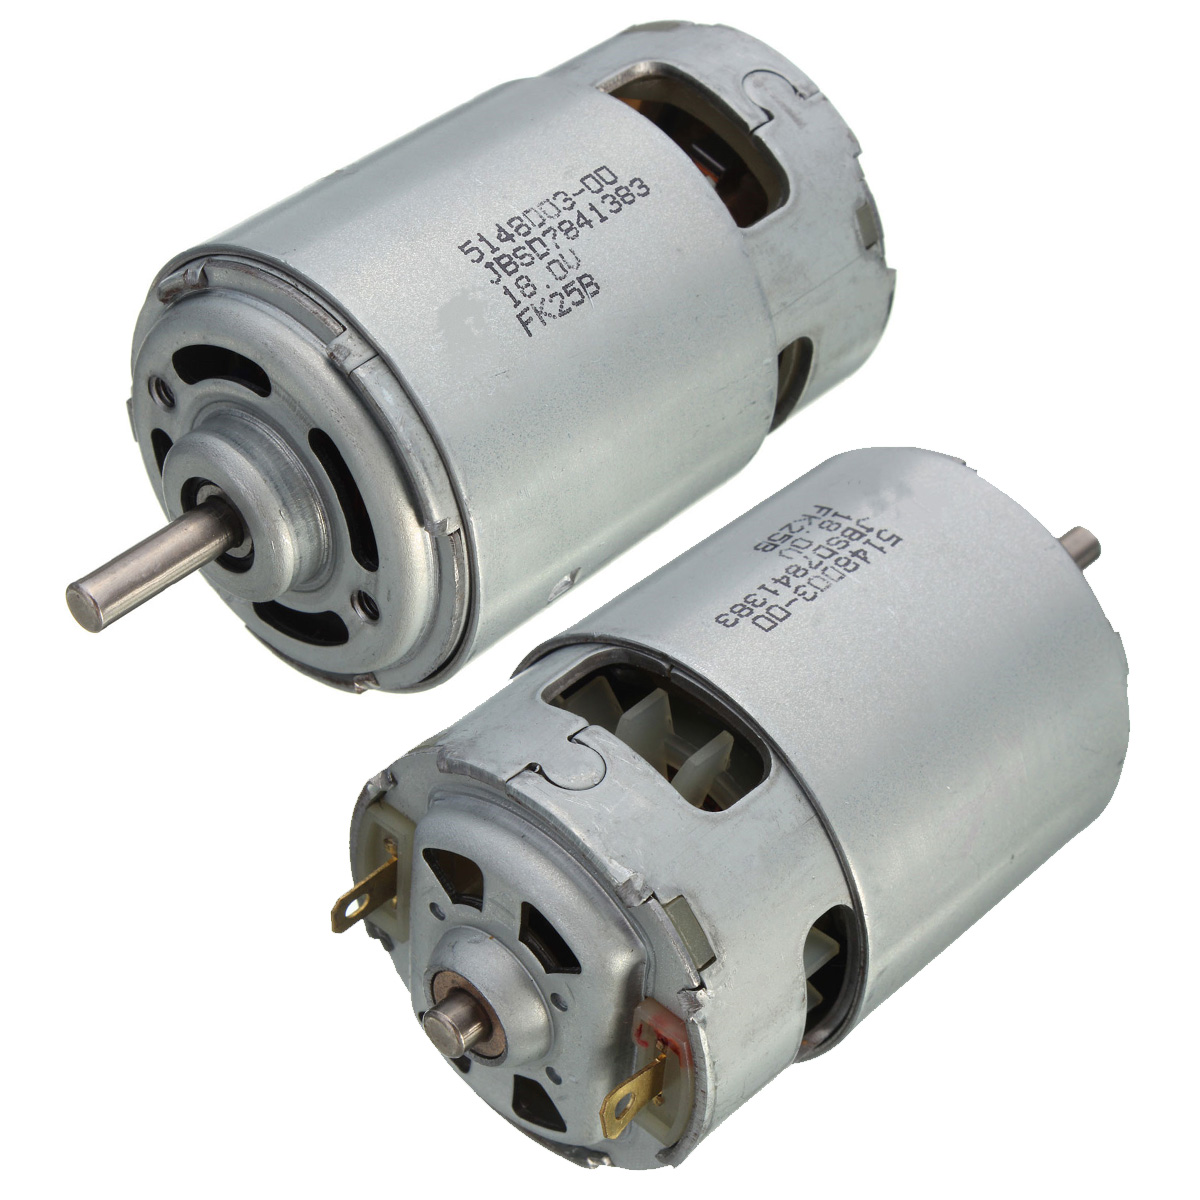 1pc large torque high power motor 775 dc motor 12v 18v